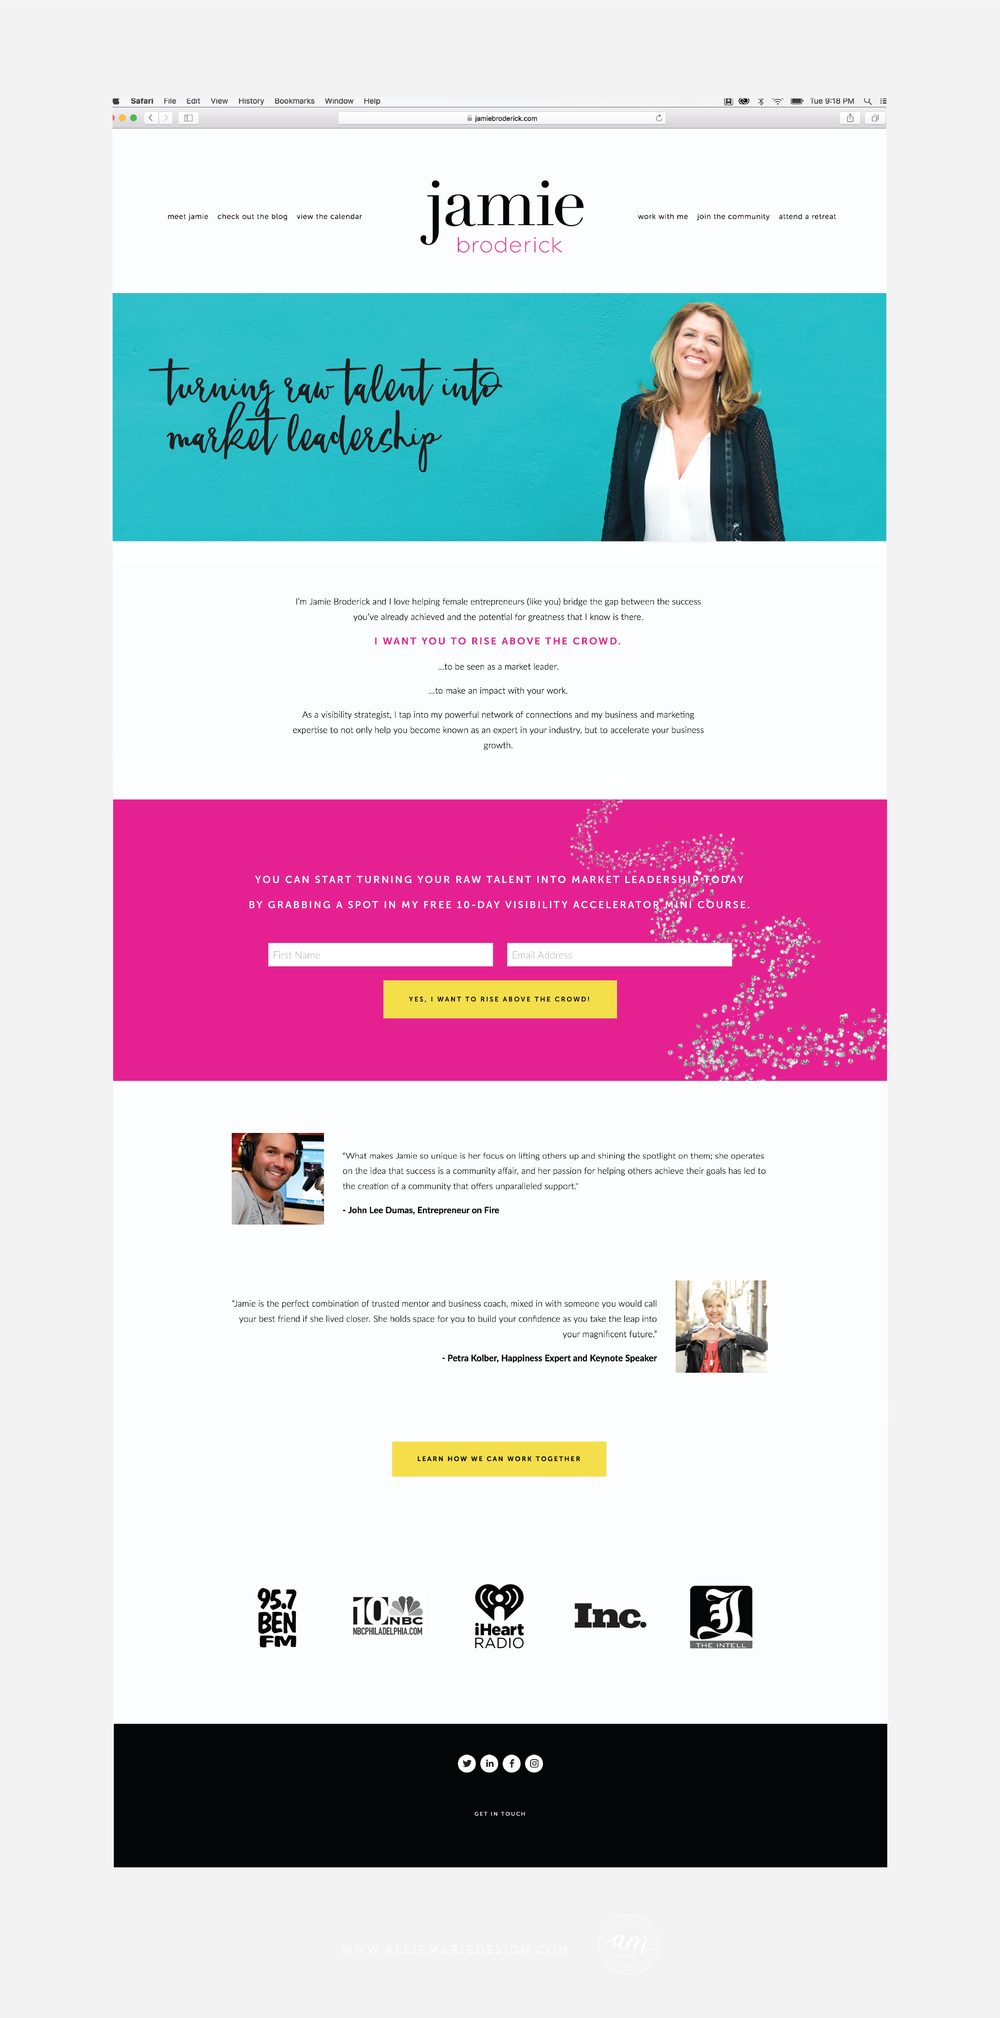 Jamie Broderick Squarespace Website Design Home Page by AllieMarie Design | Copywriting by Marissa Polselli of Wordtree, LLC